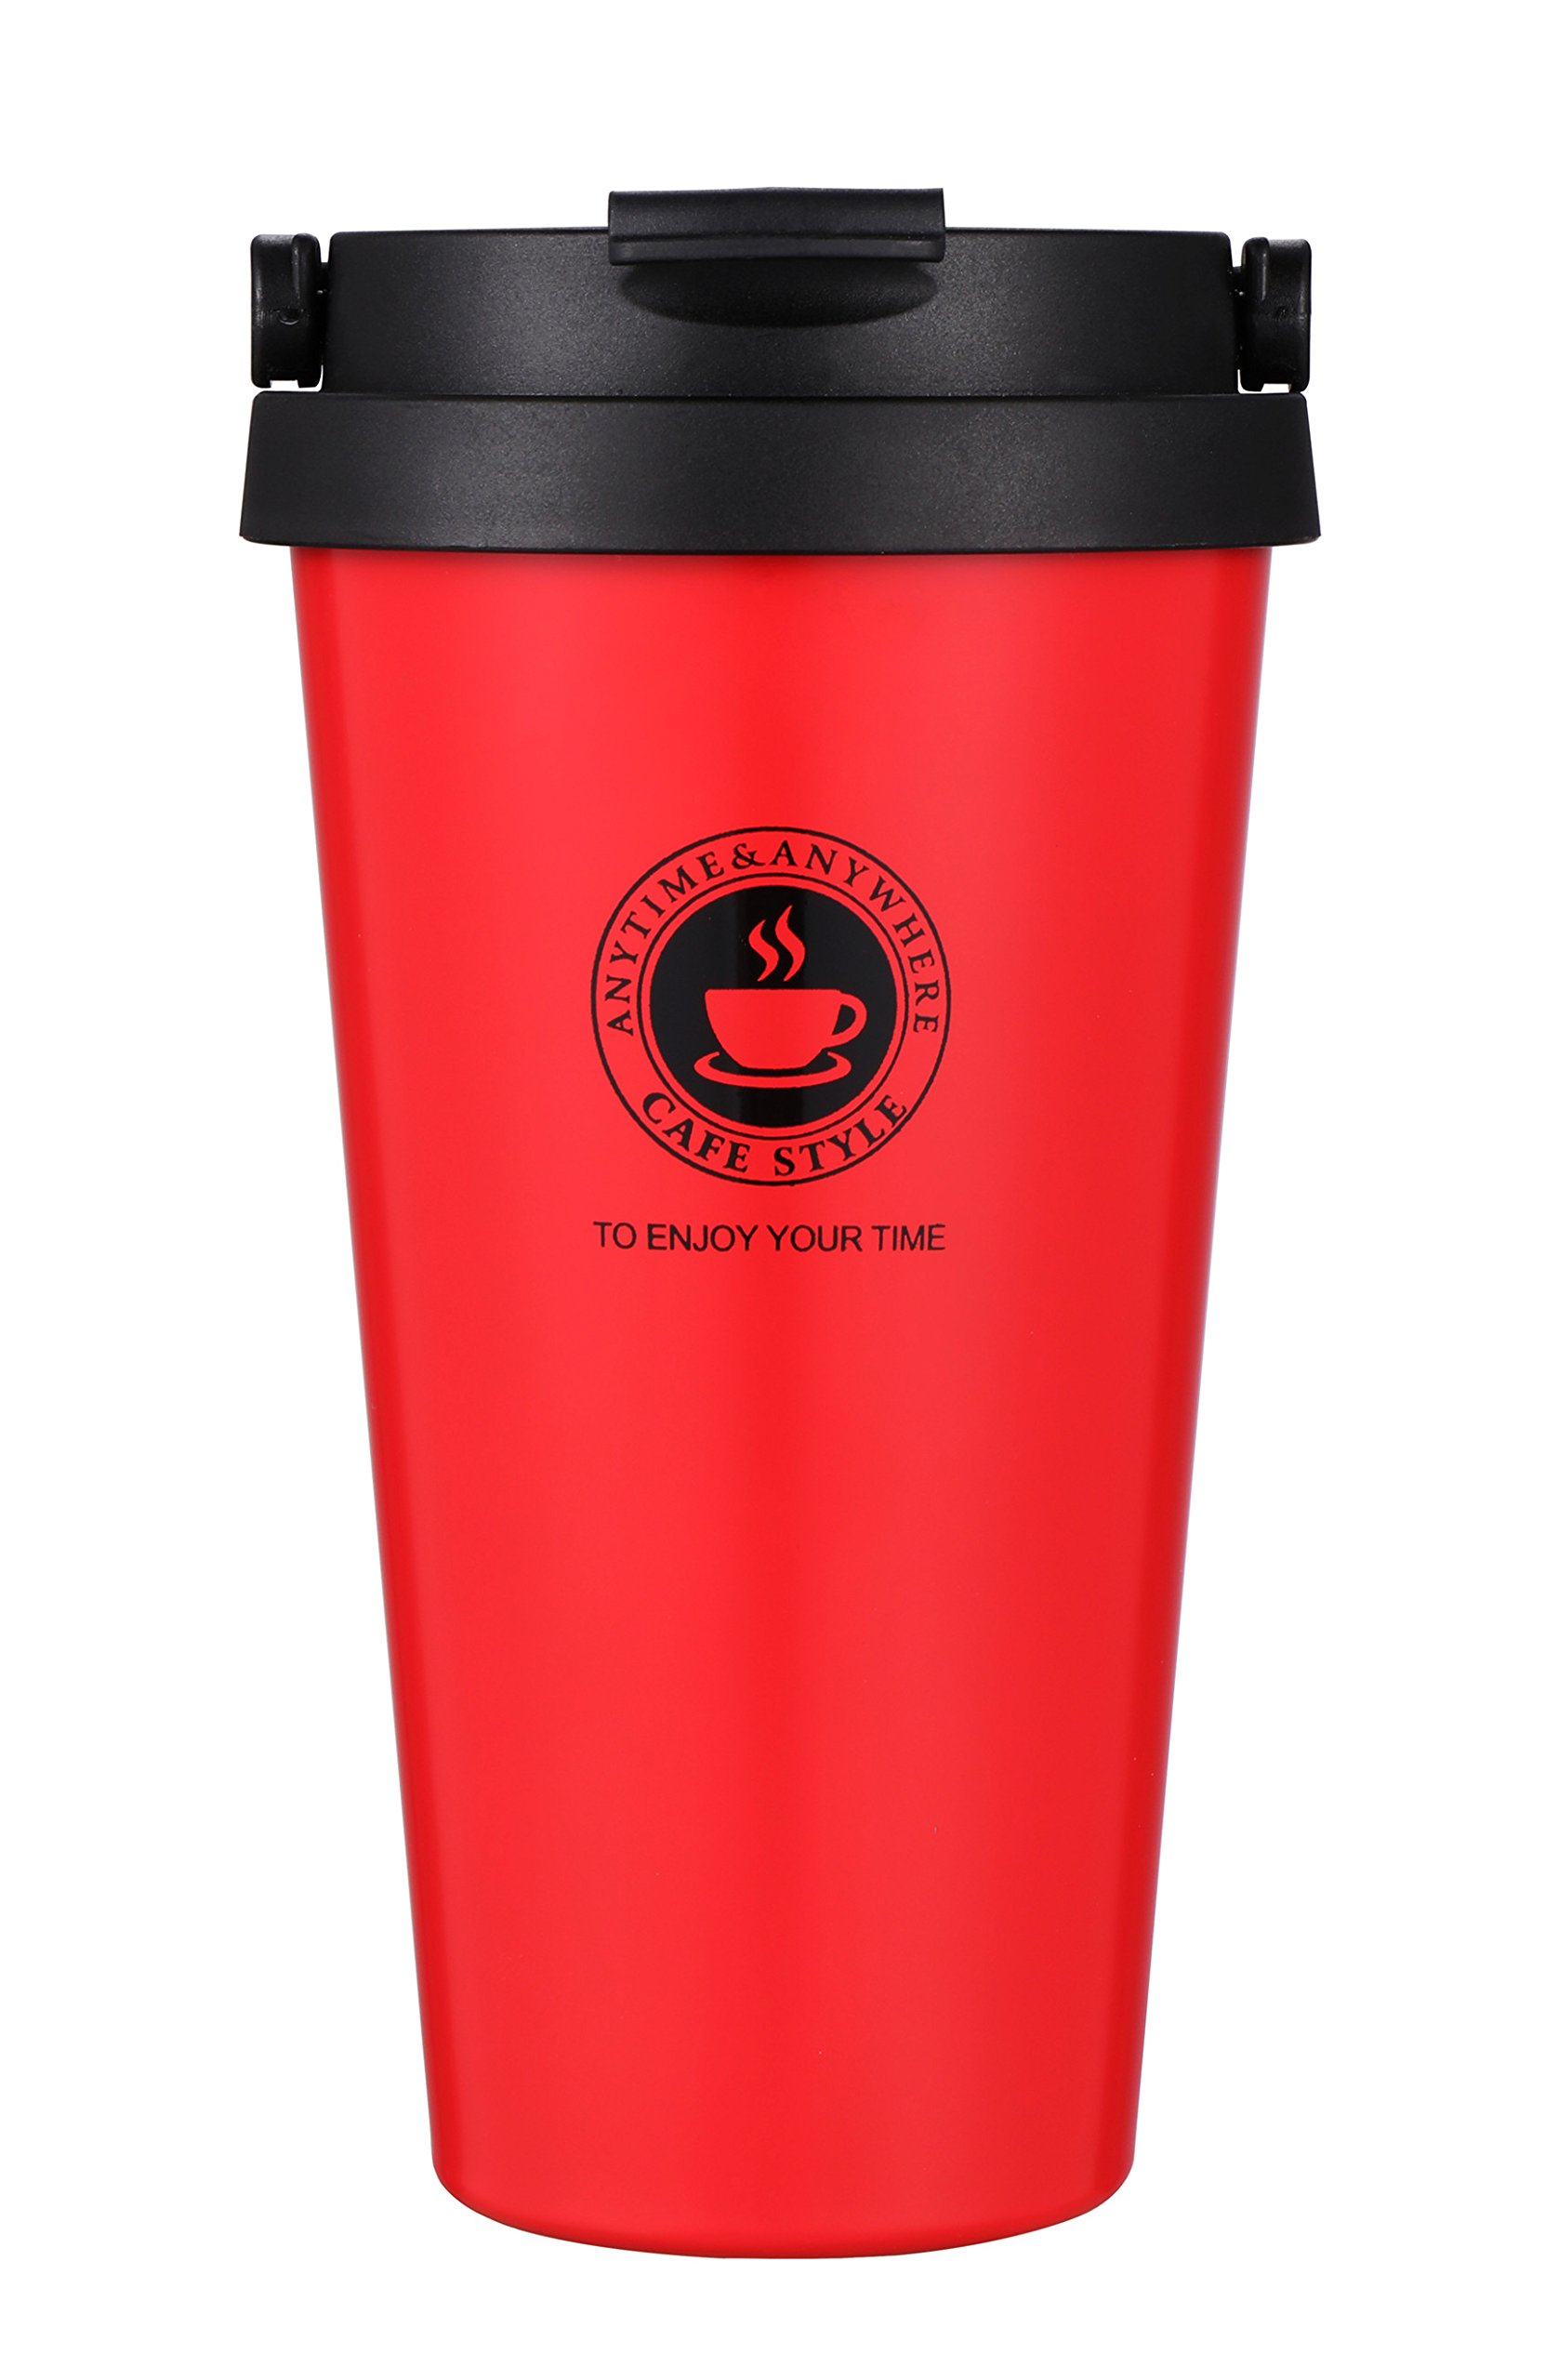 18/8 Stainless Steel Vacuum Insulated Travel Coffee Mug with Handle/Portable Thermal Cup,Wide Mouth Tumbler with Leak Proof Lid,16oz,Red